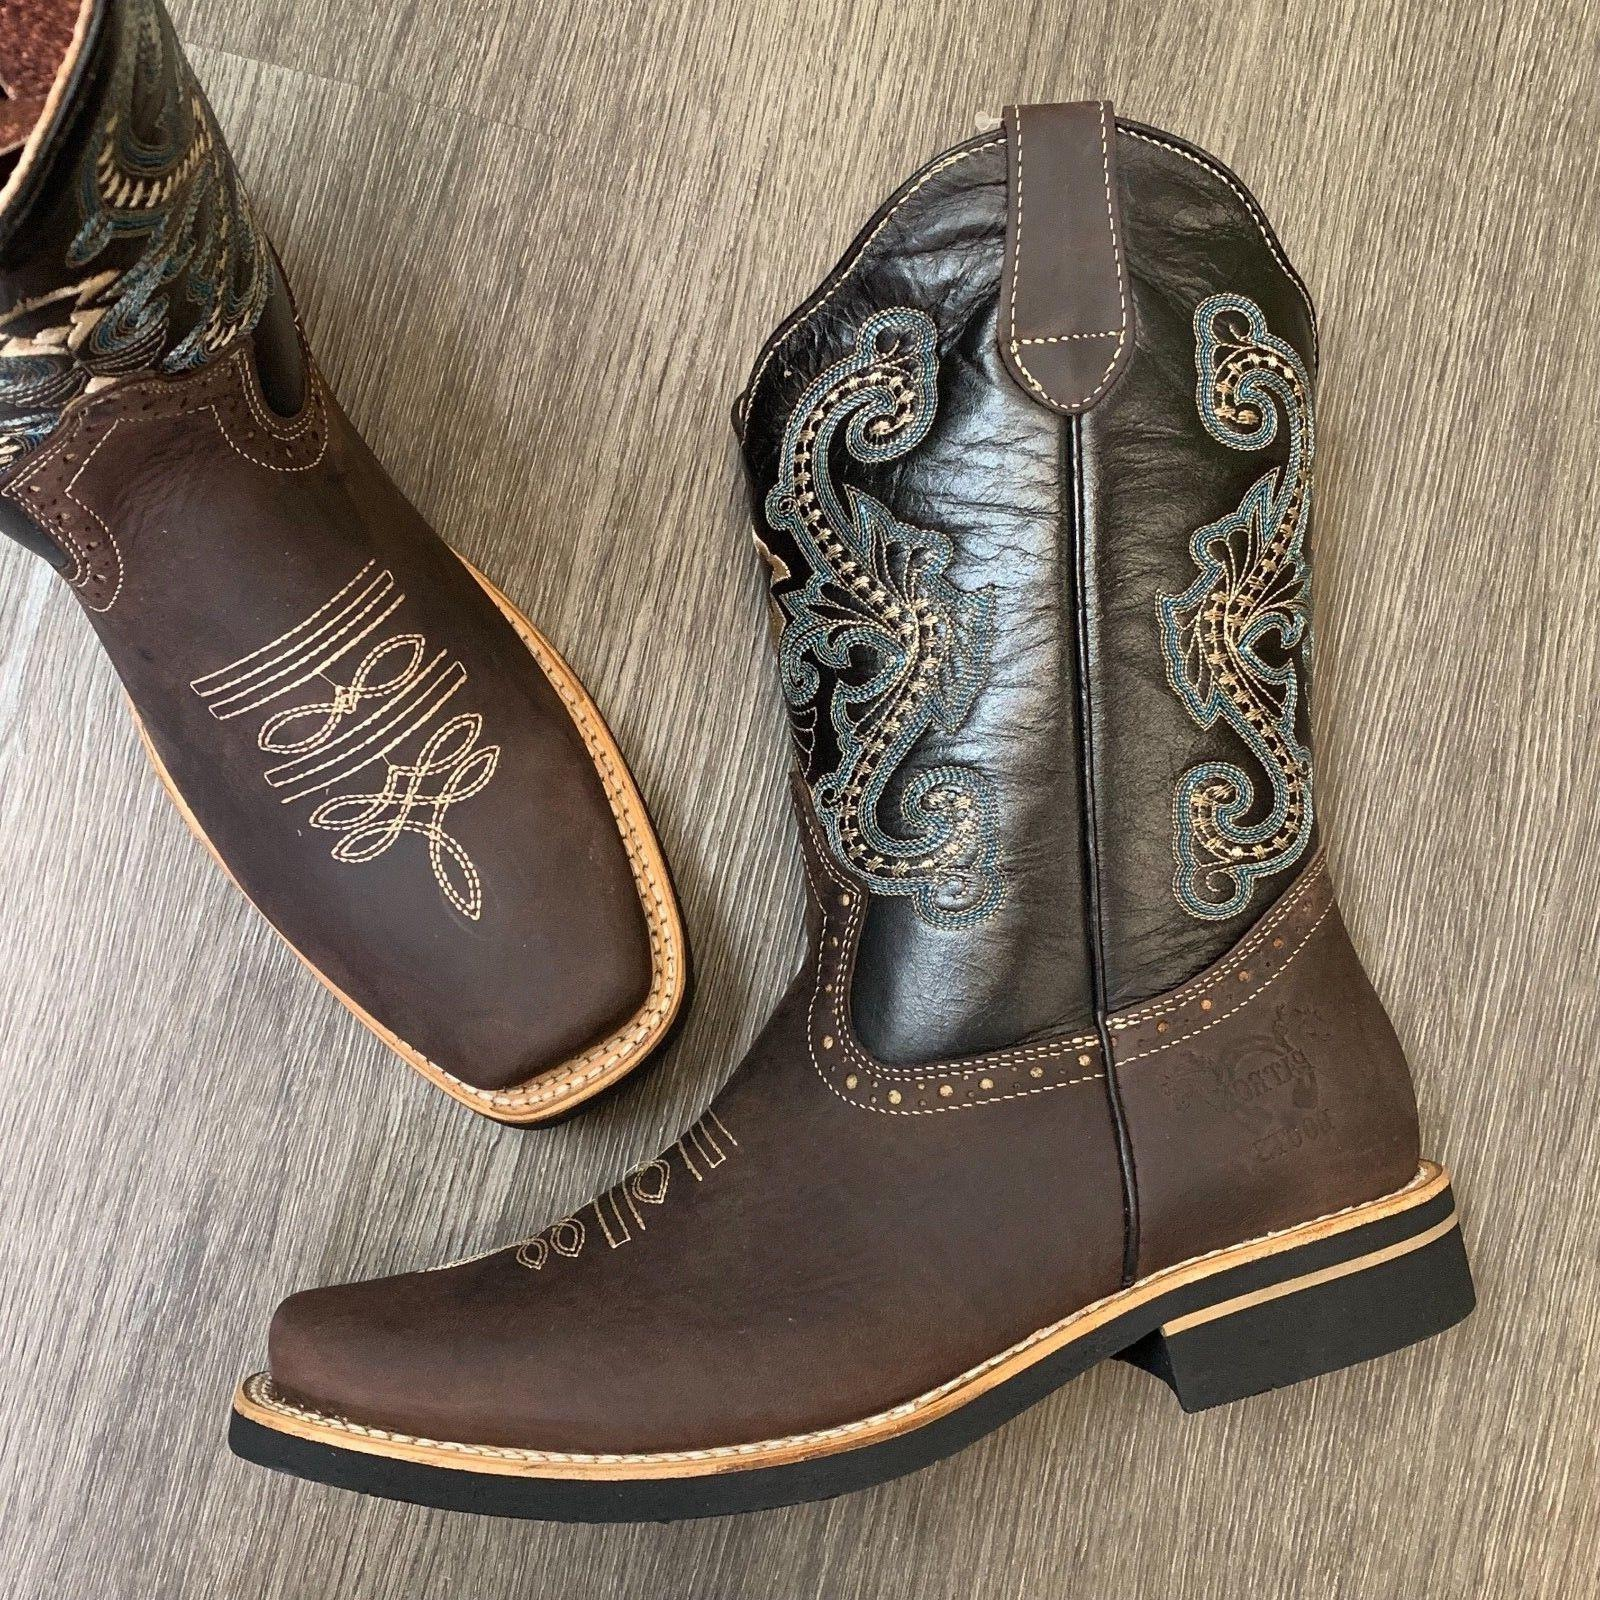 MEN'S WORK BOOTS WESTERN SADDLE